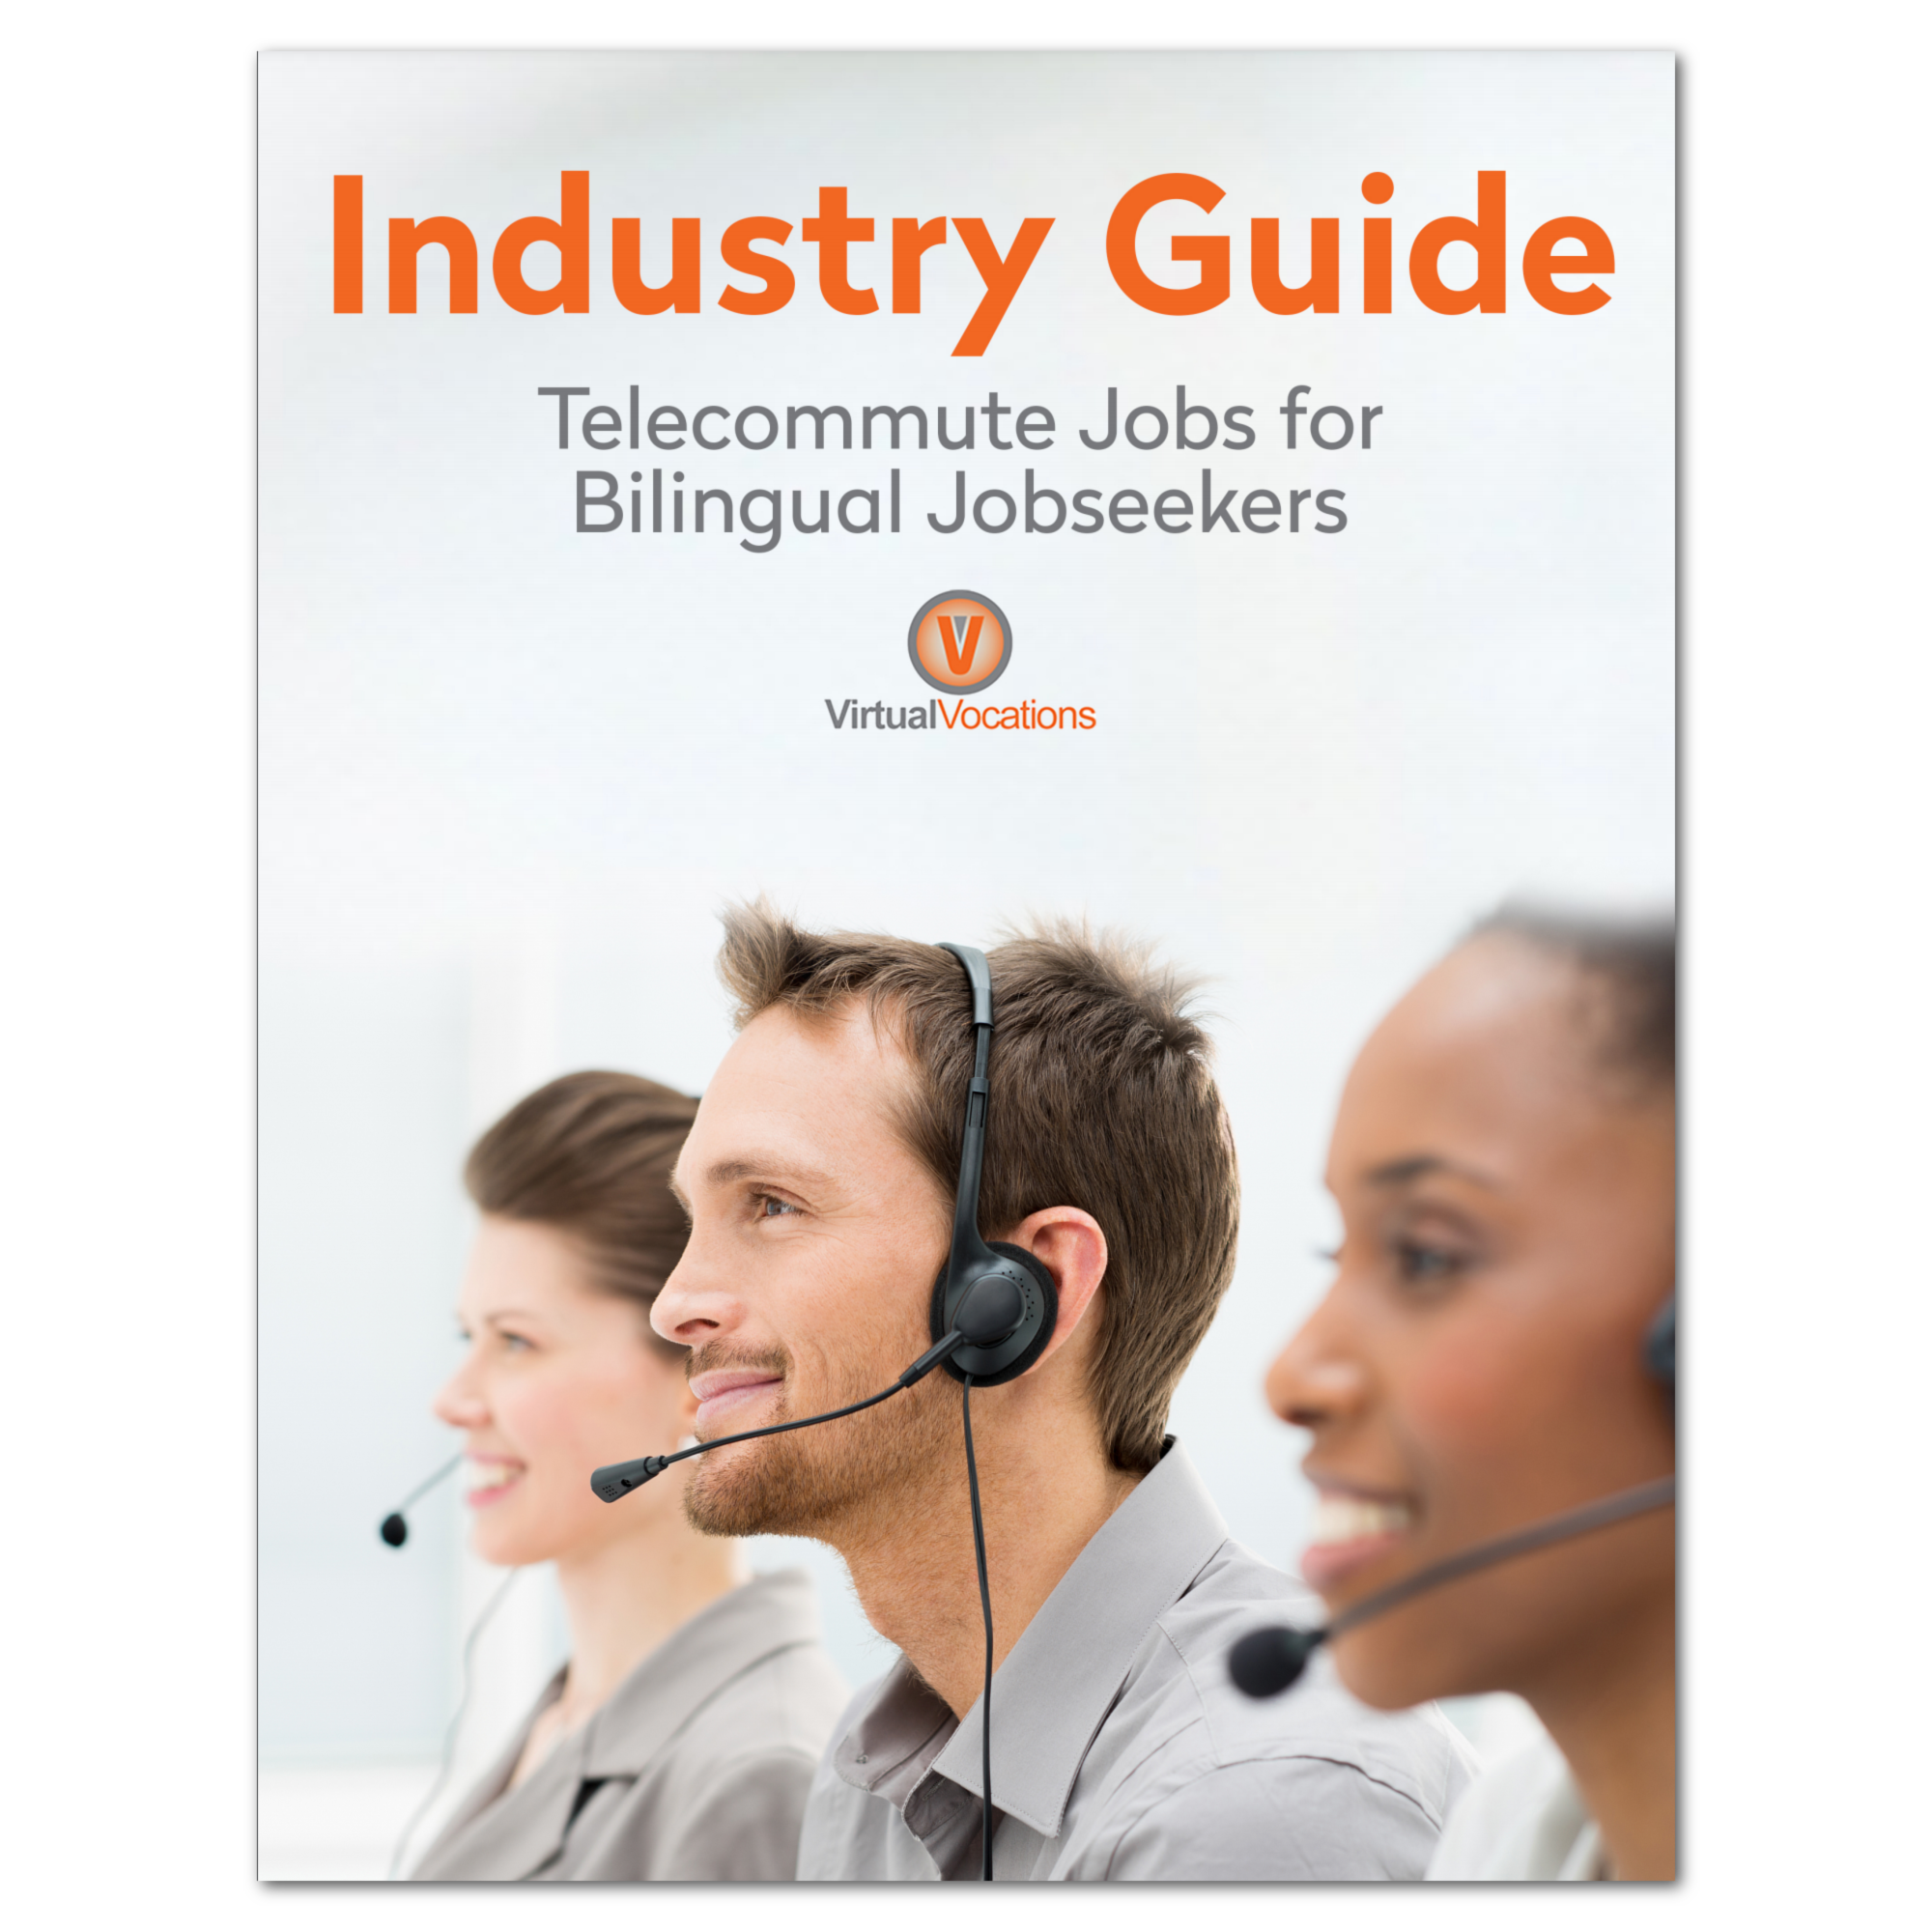 Industry Guide for Bilingual Remote Jobs